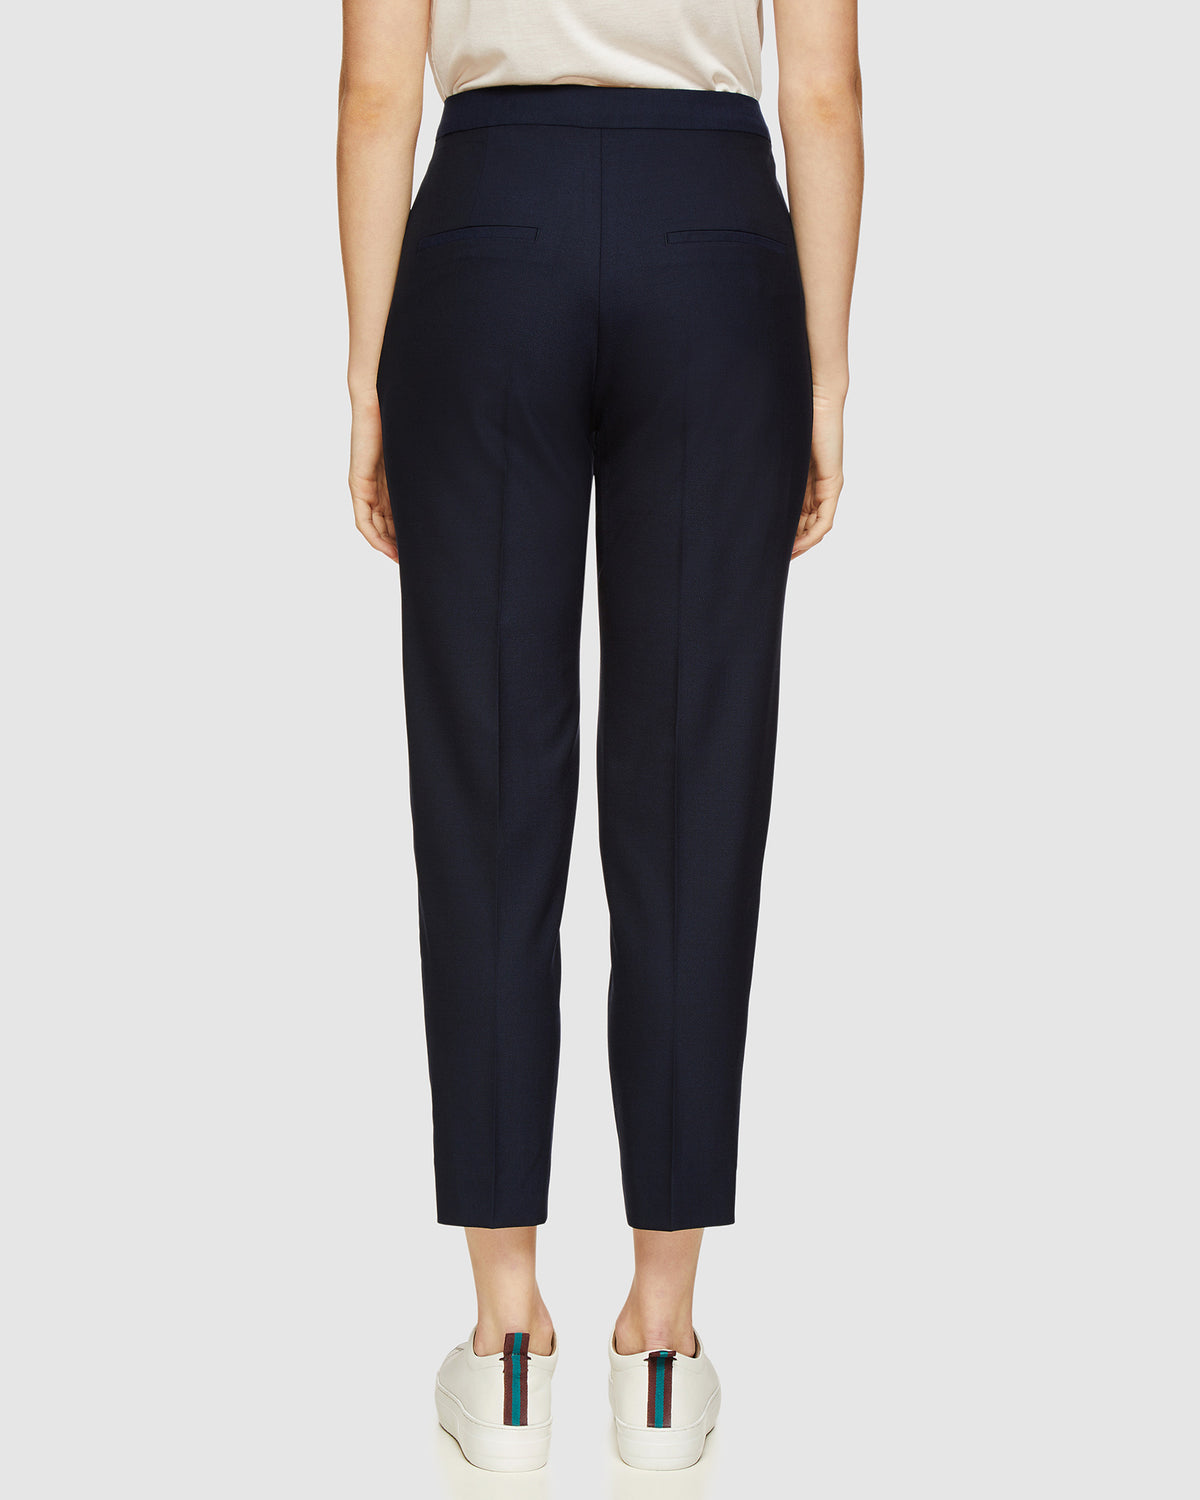 CHARLA WOOL SUIT TROUSERS NAVY